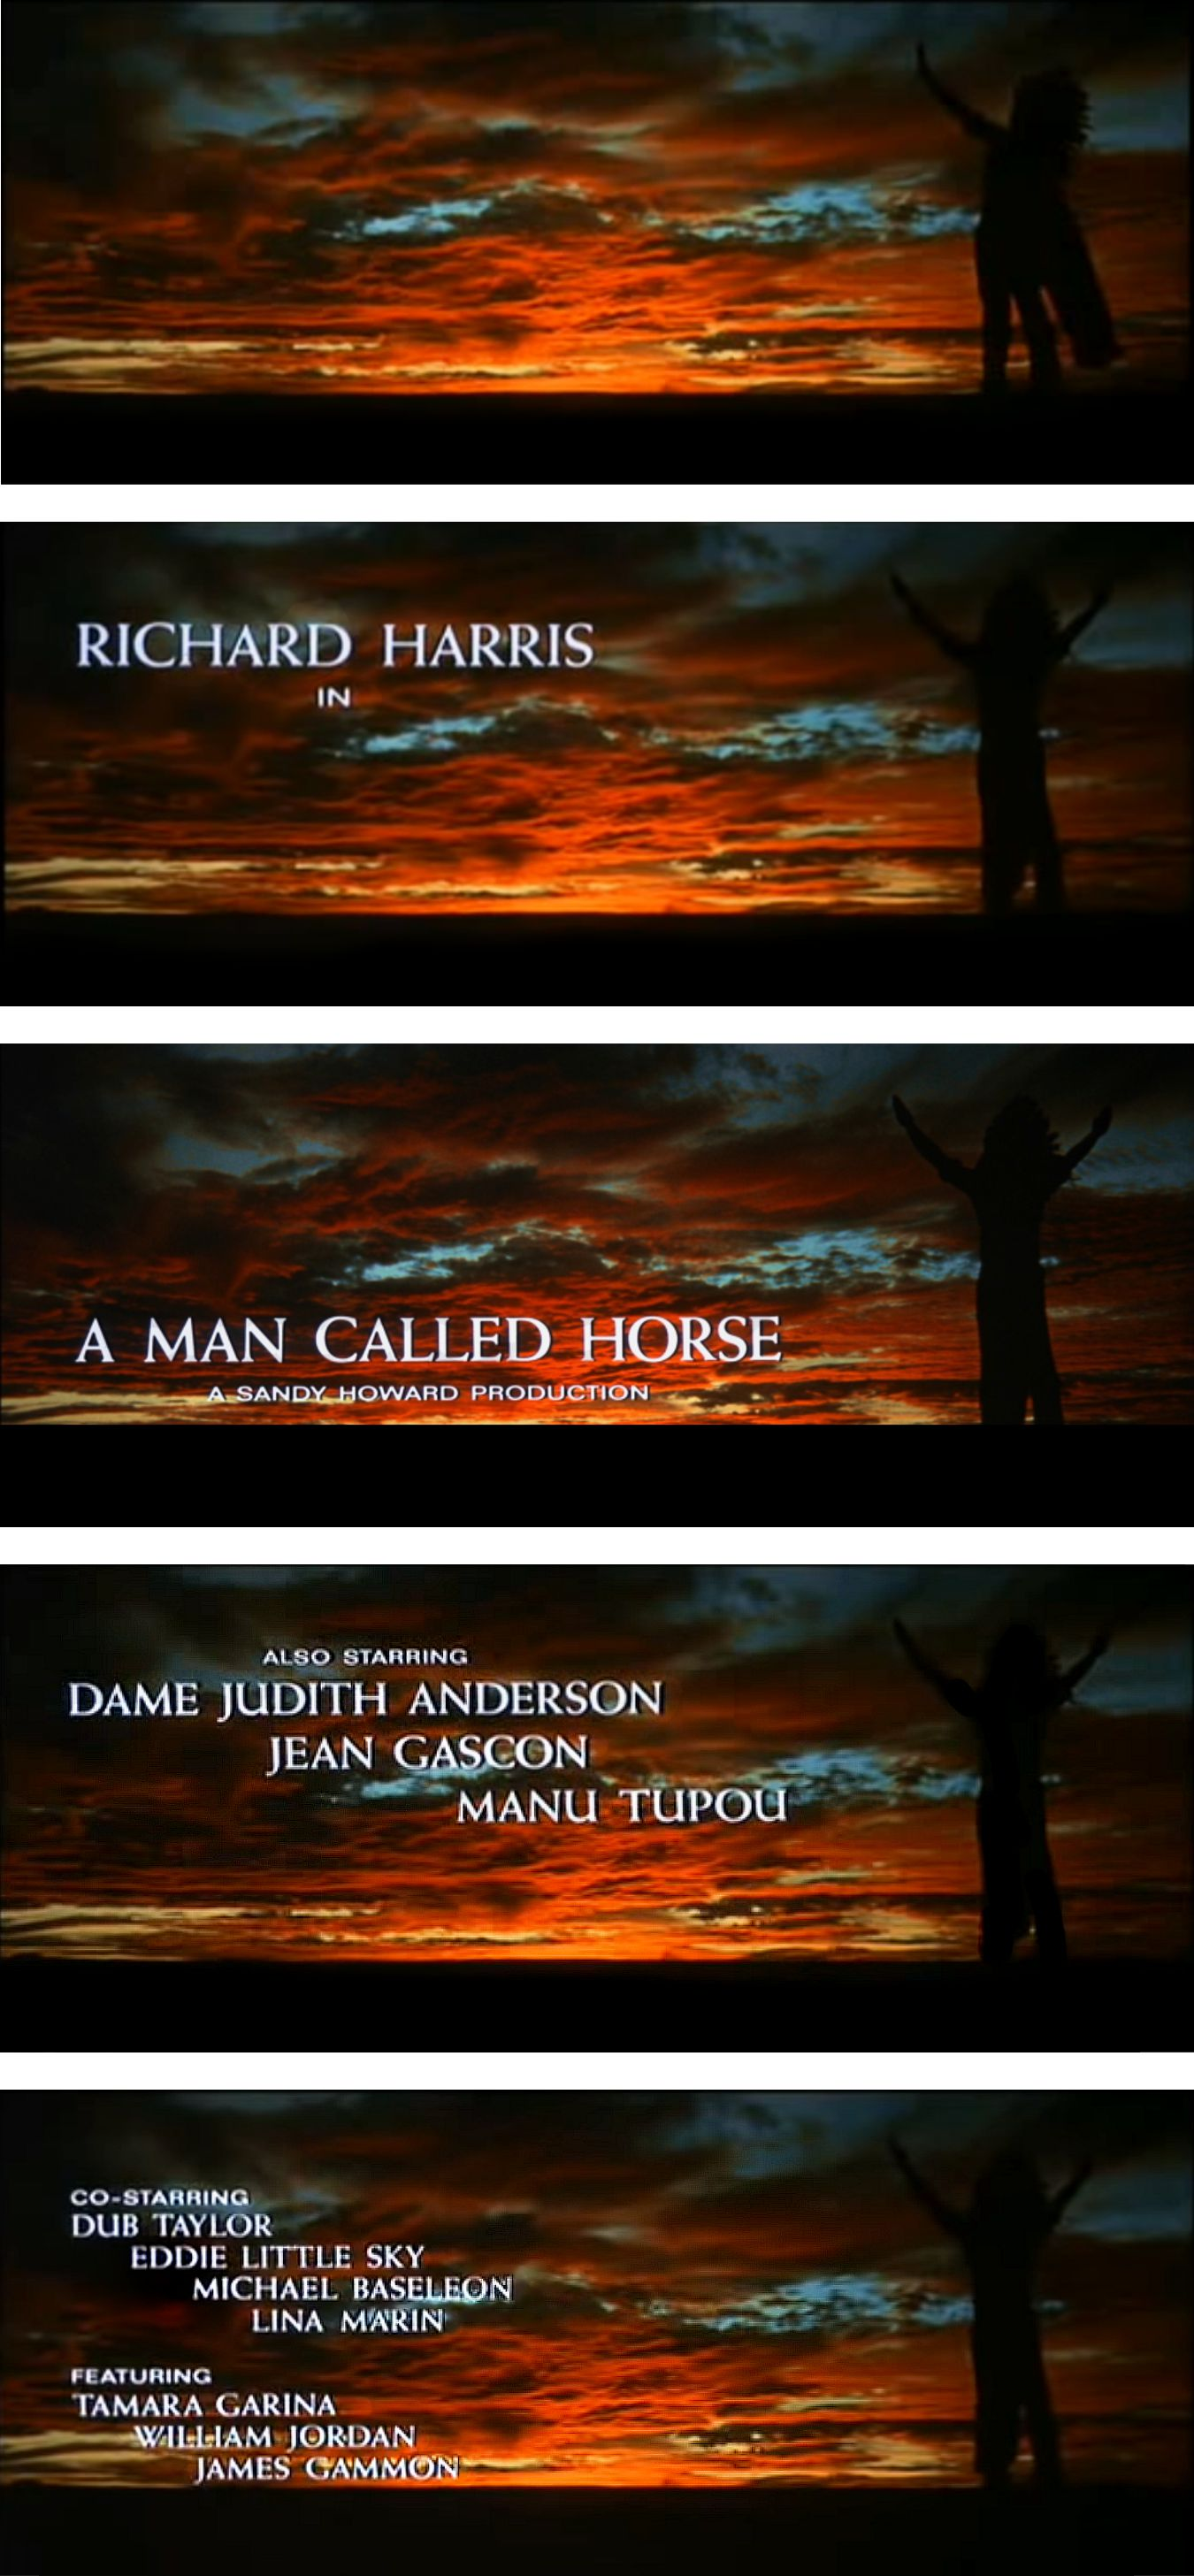 a man called horse Watch a man called horse online free on 123movies watch a man called horse full movie online for free at 123movies.